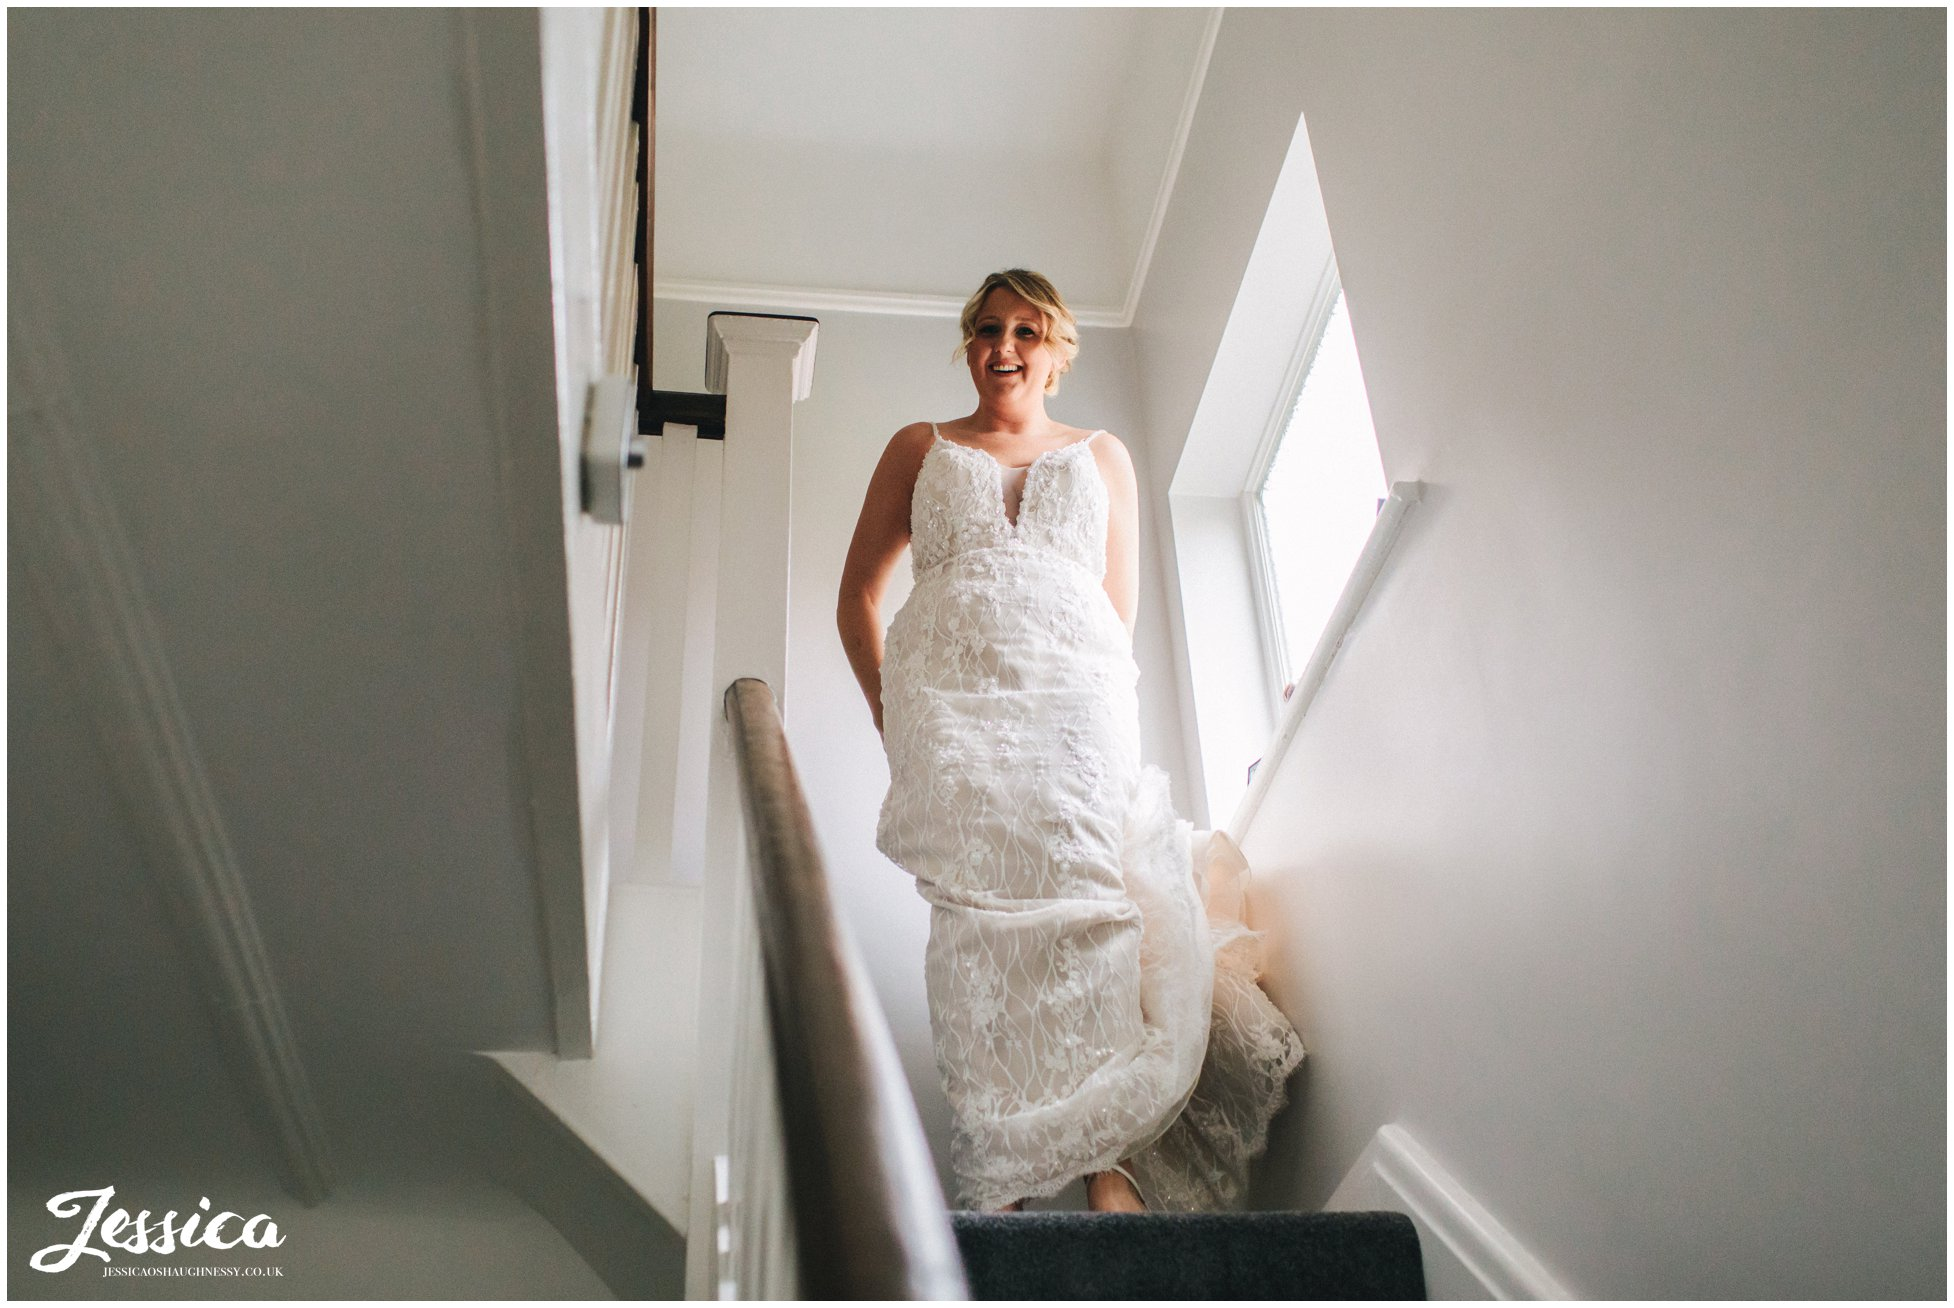 the bride comes downstairs dressed and ready to go